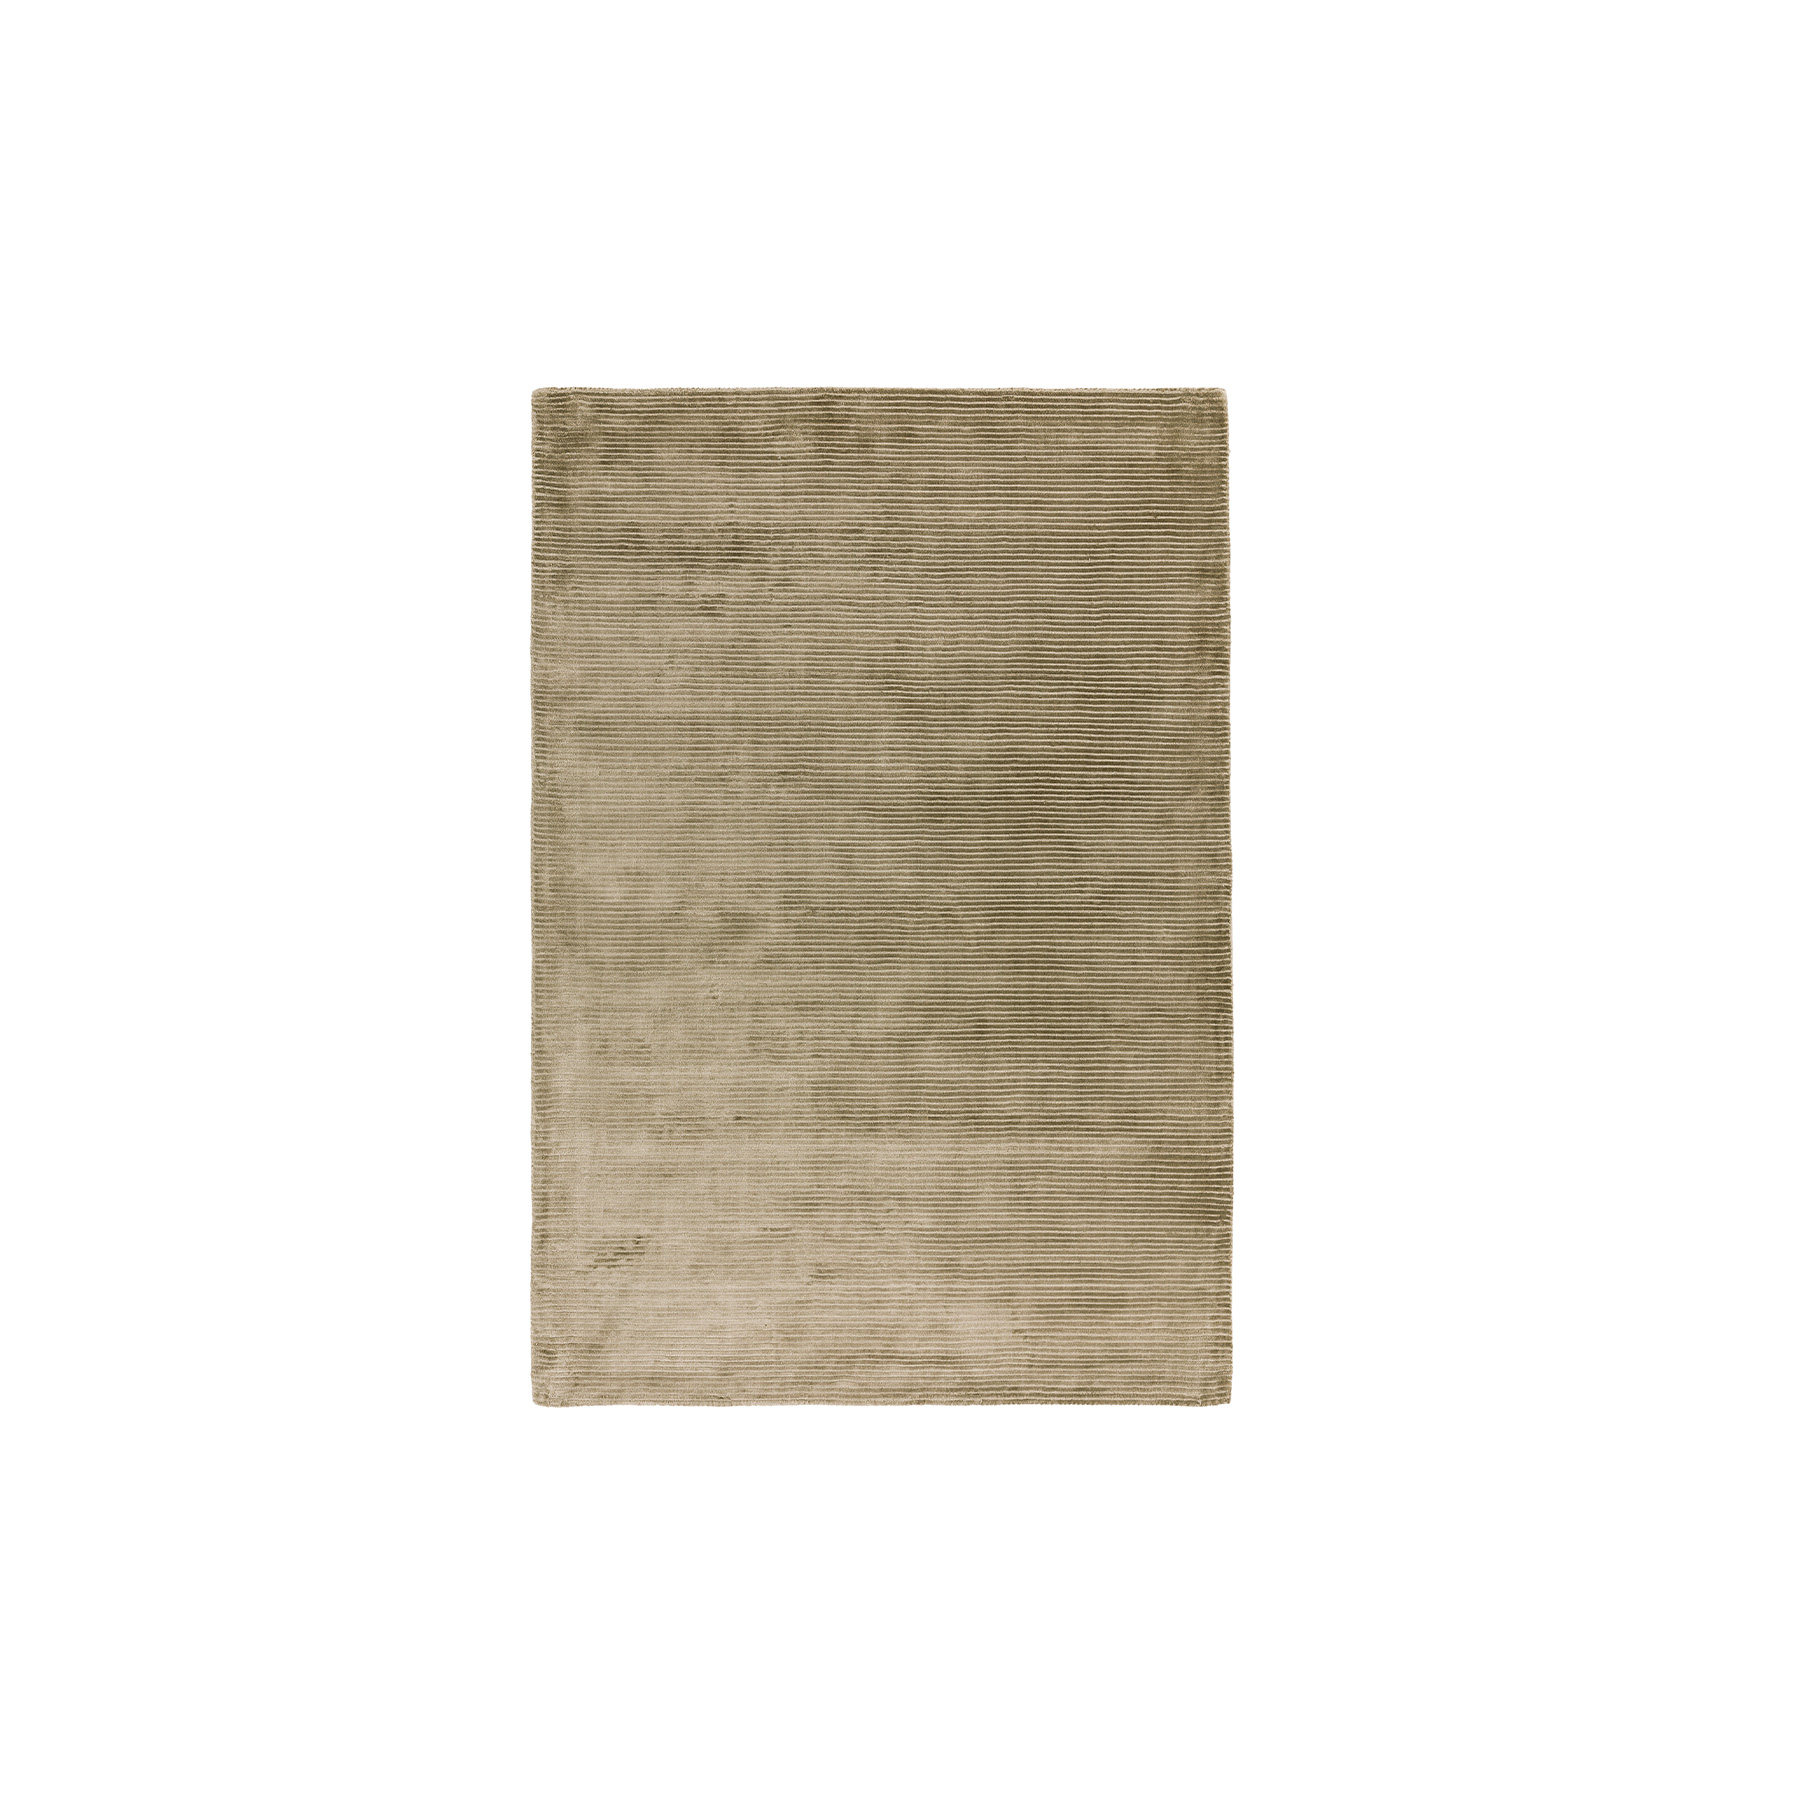 Bellagio Taupe Rug - The Contemporary Plains Collection of plain rugs feature a largely neutral and natural palette of greys and creams with modern fashionable contrast tones added throughout. The use of clean lines and complementary borders adds visual interest whilst maintaining the contemporary ethos. The Bellagio rugs are Hand-woven viscose with loop stripe detail. Available in different sizes.  | Matter of Stuff